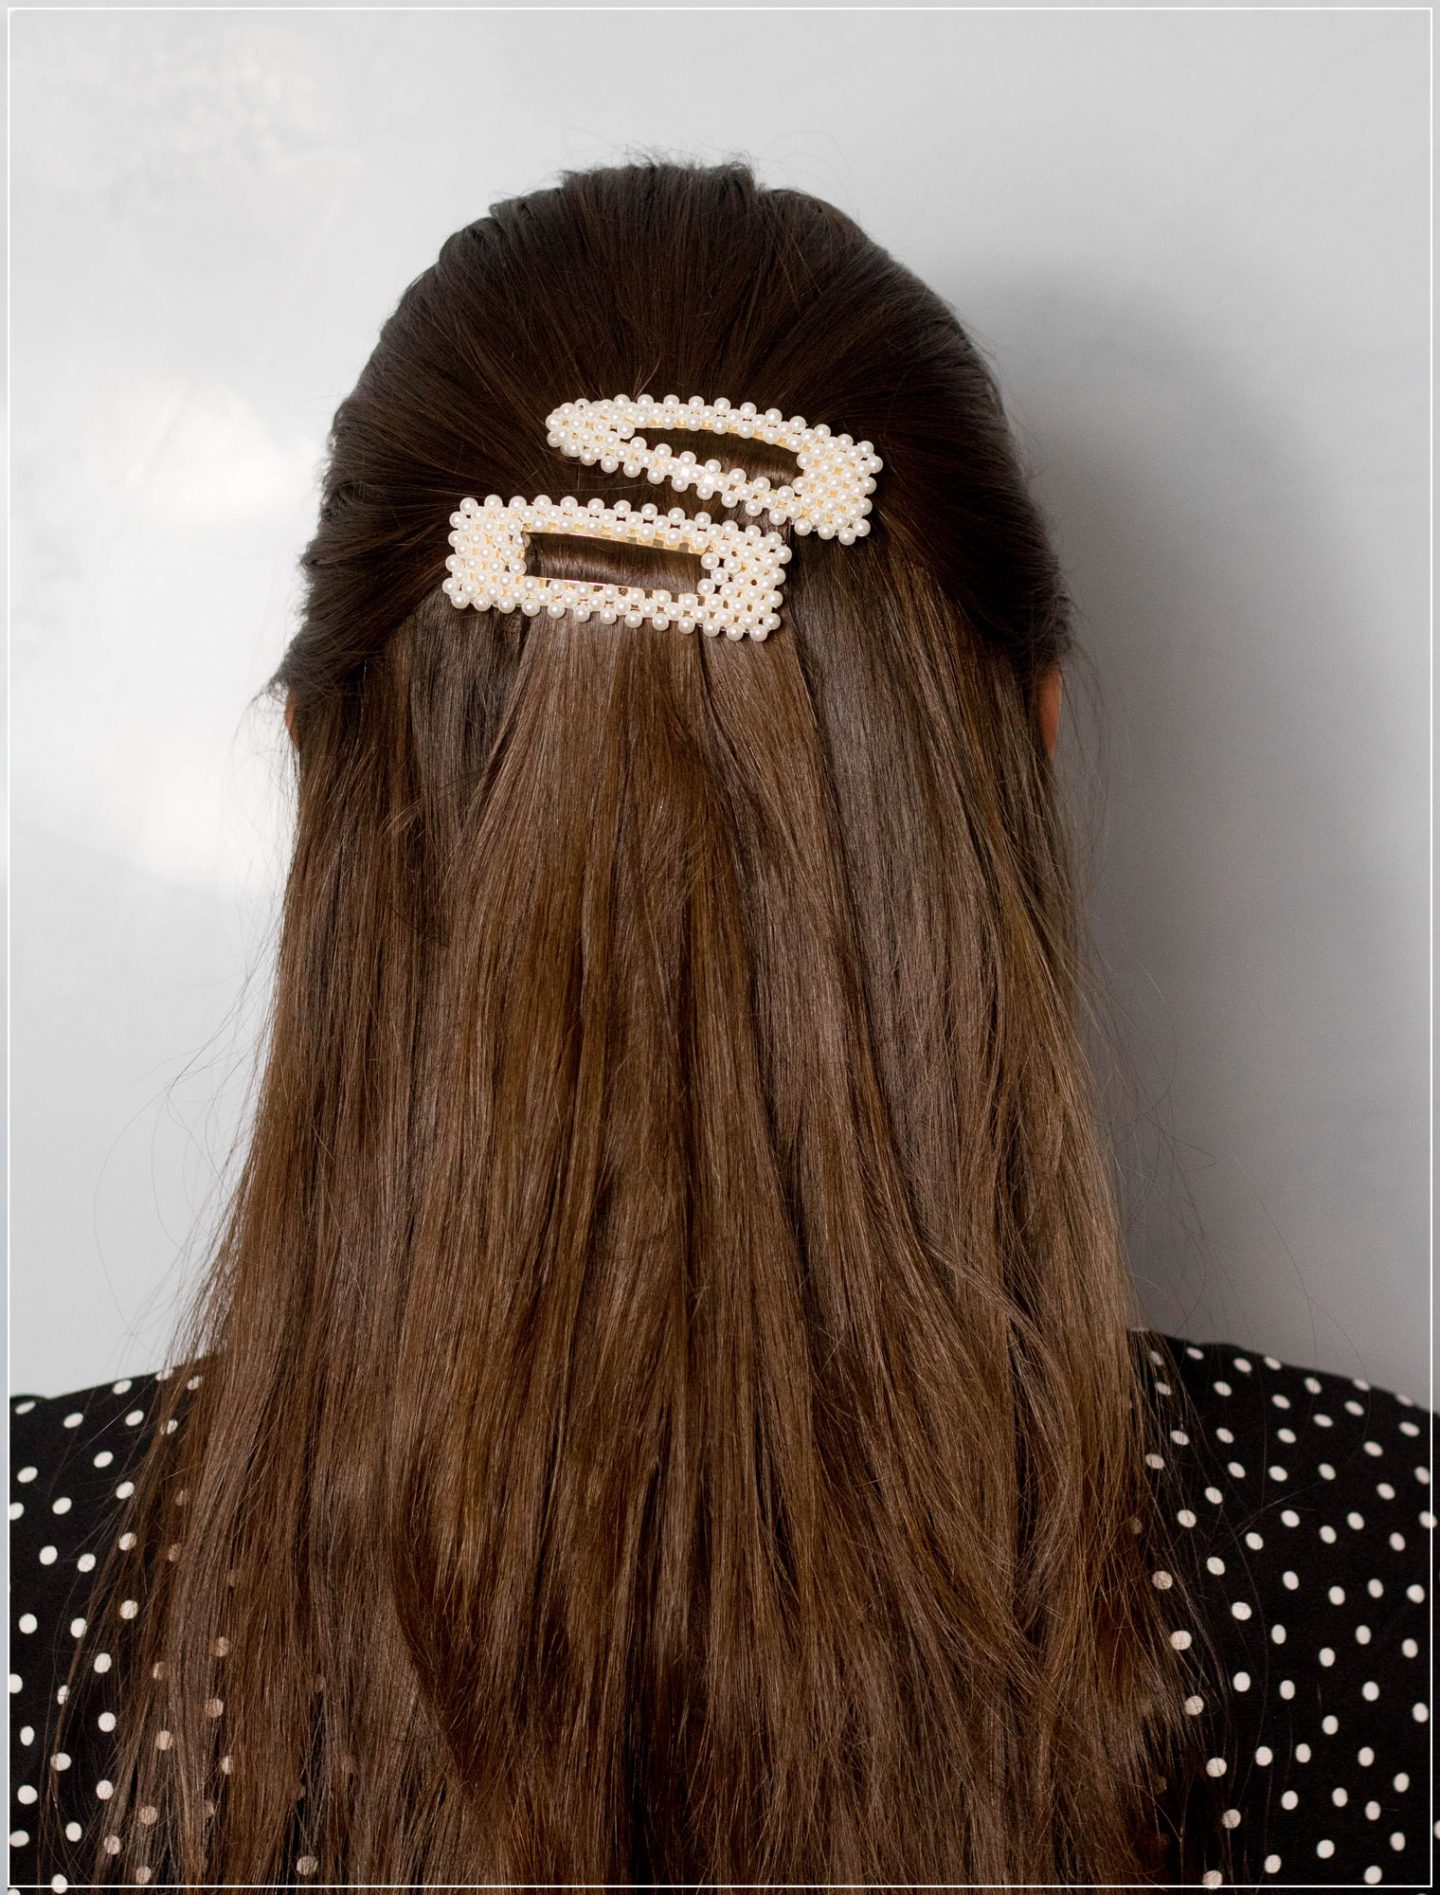 Perlen Haarspangen, Haarclips, verzerrter Haarschmuck, Sommerfrisuren, Frisurenideen,  Beautytutorial, Make-up Tutorial, Beauty Blog, Beautybloggerin, Ruhrgebiet